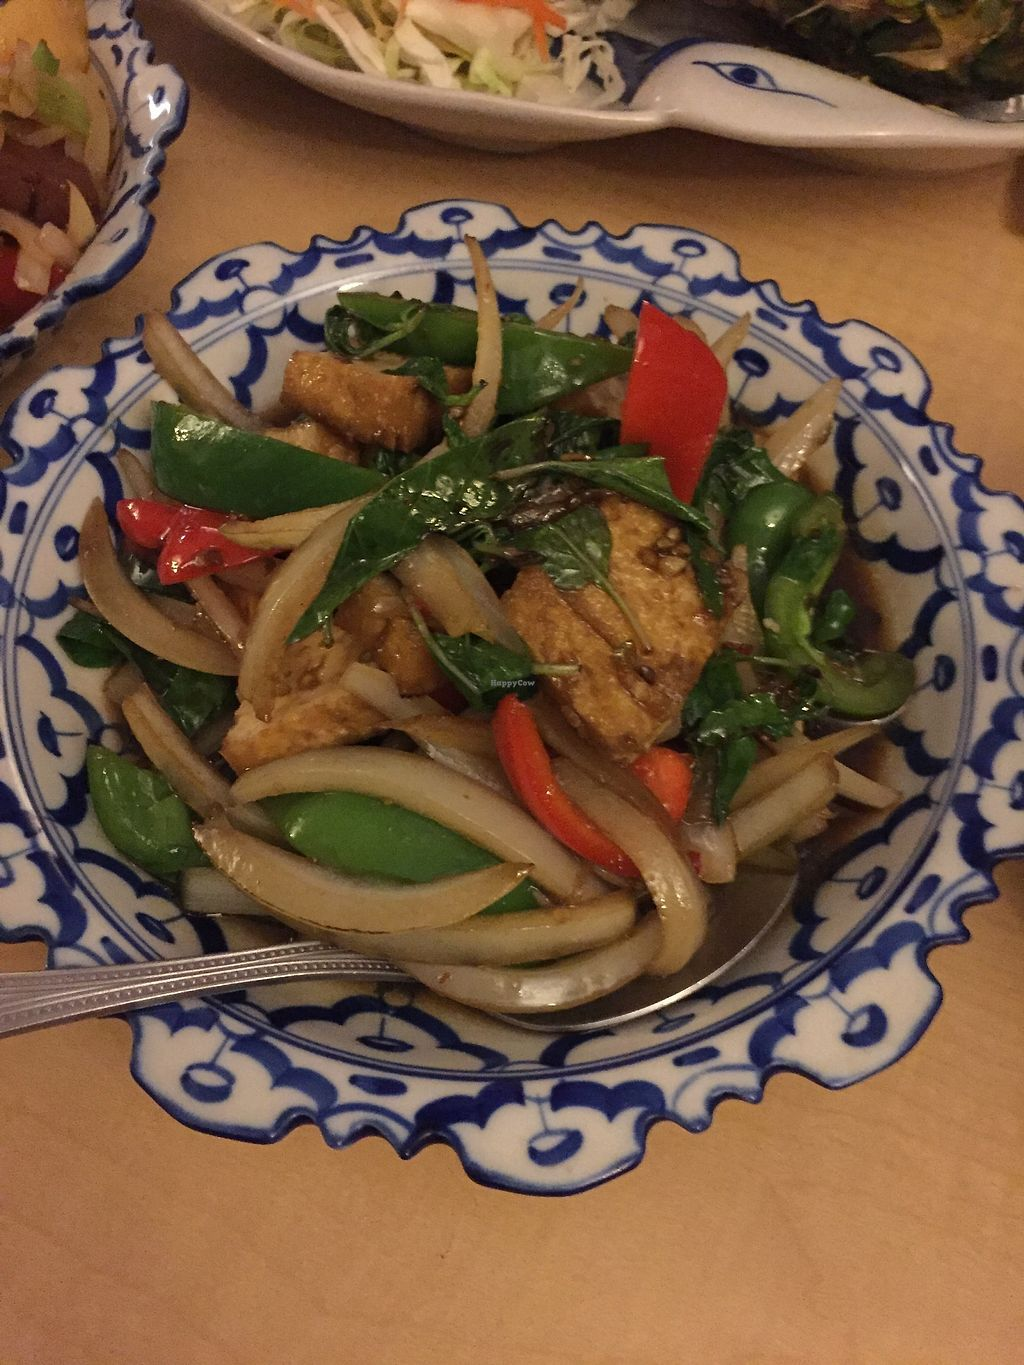 """Photo of Thai House  by <a href=""""/members/profile/Bariann"""">Bariann</a> <br/>Tofu with Mint Leaves <br/> March 21, 2018  - <a href='/contact/abuse/image/115141/373518'>Report</a>"""